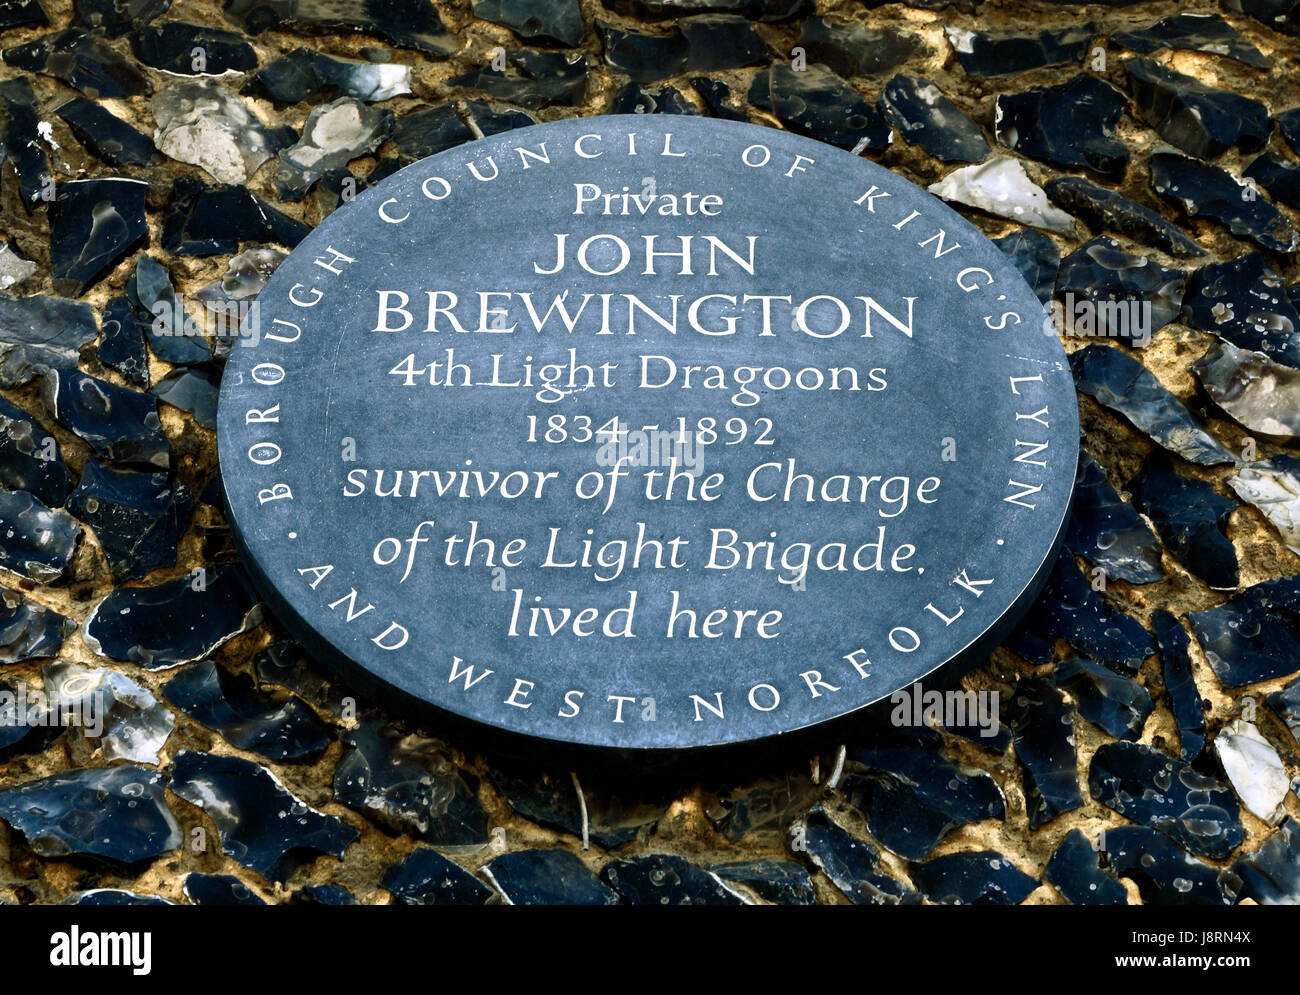 Charge of the Light Brigade, private John Brewington, 4th Light Dragoons Regiment, British soldier, memorial plaque, - Stock Image